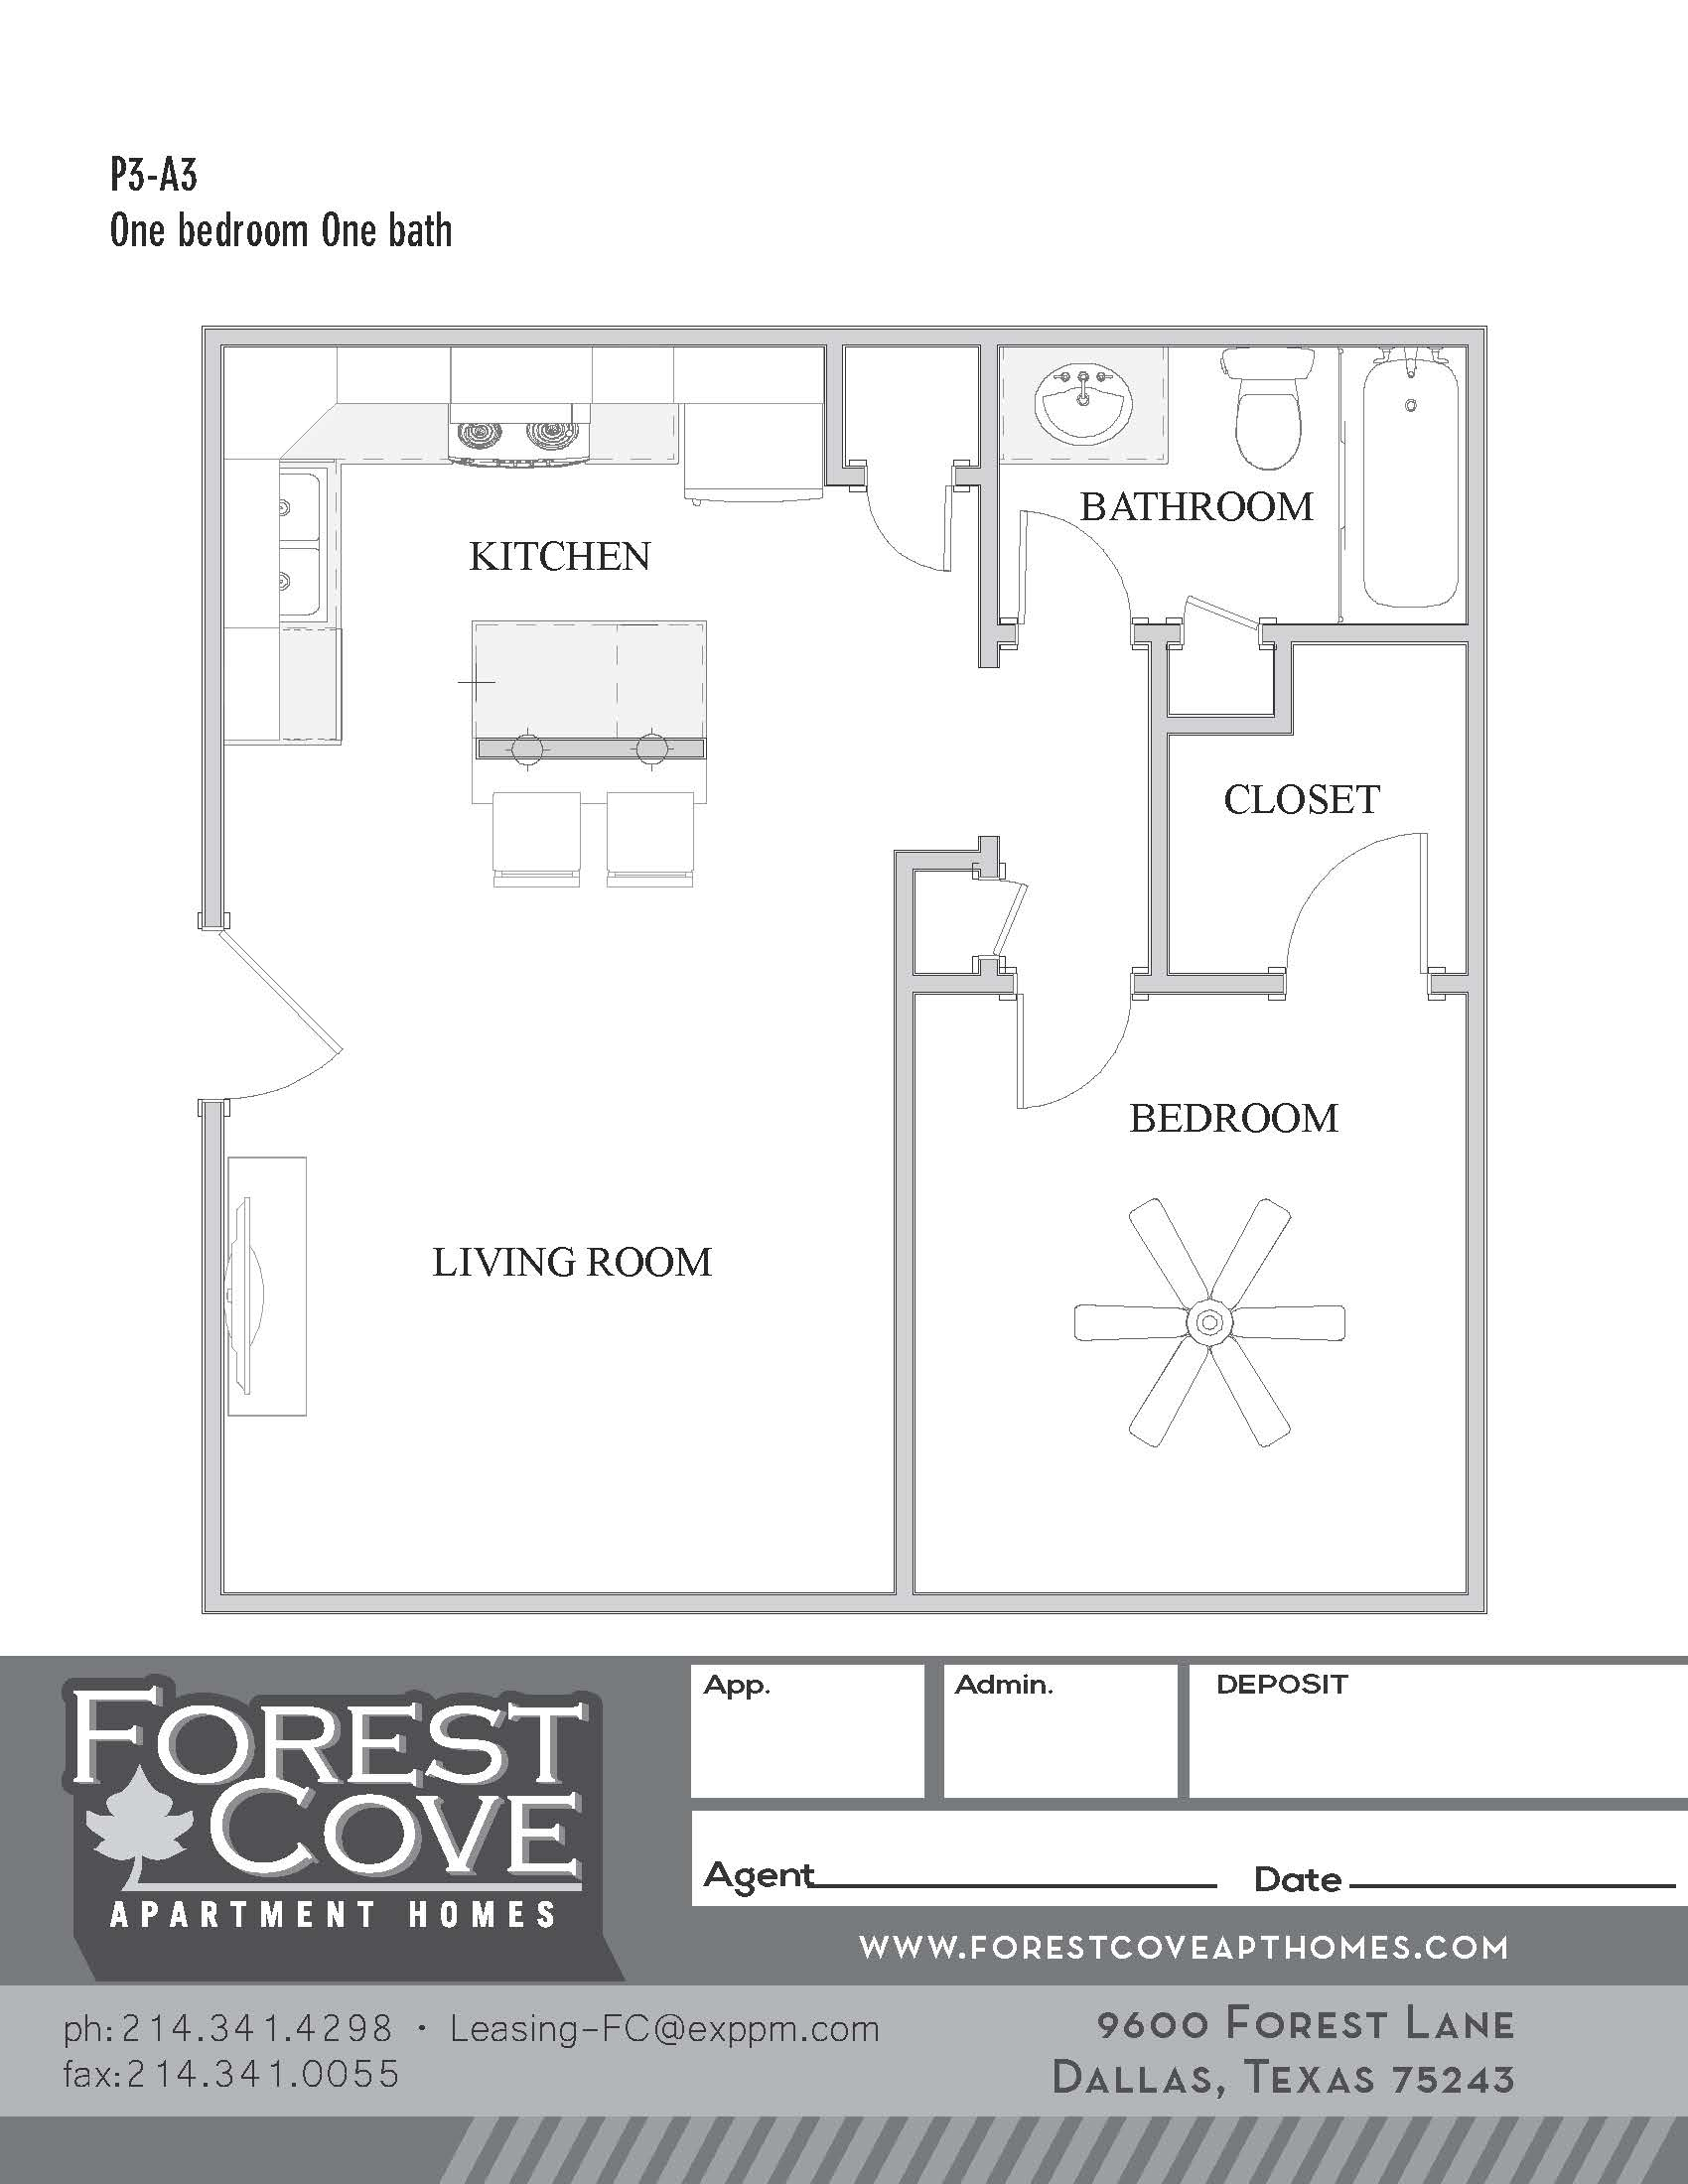 Forest Cove Apartments - Floorplan - 3-A3